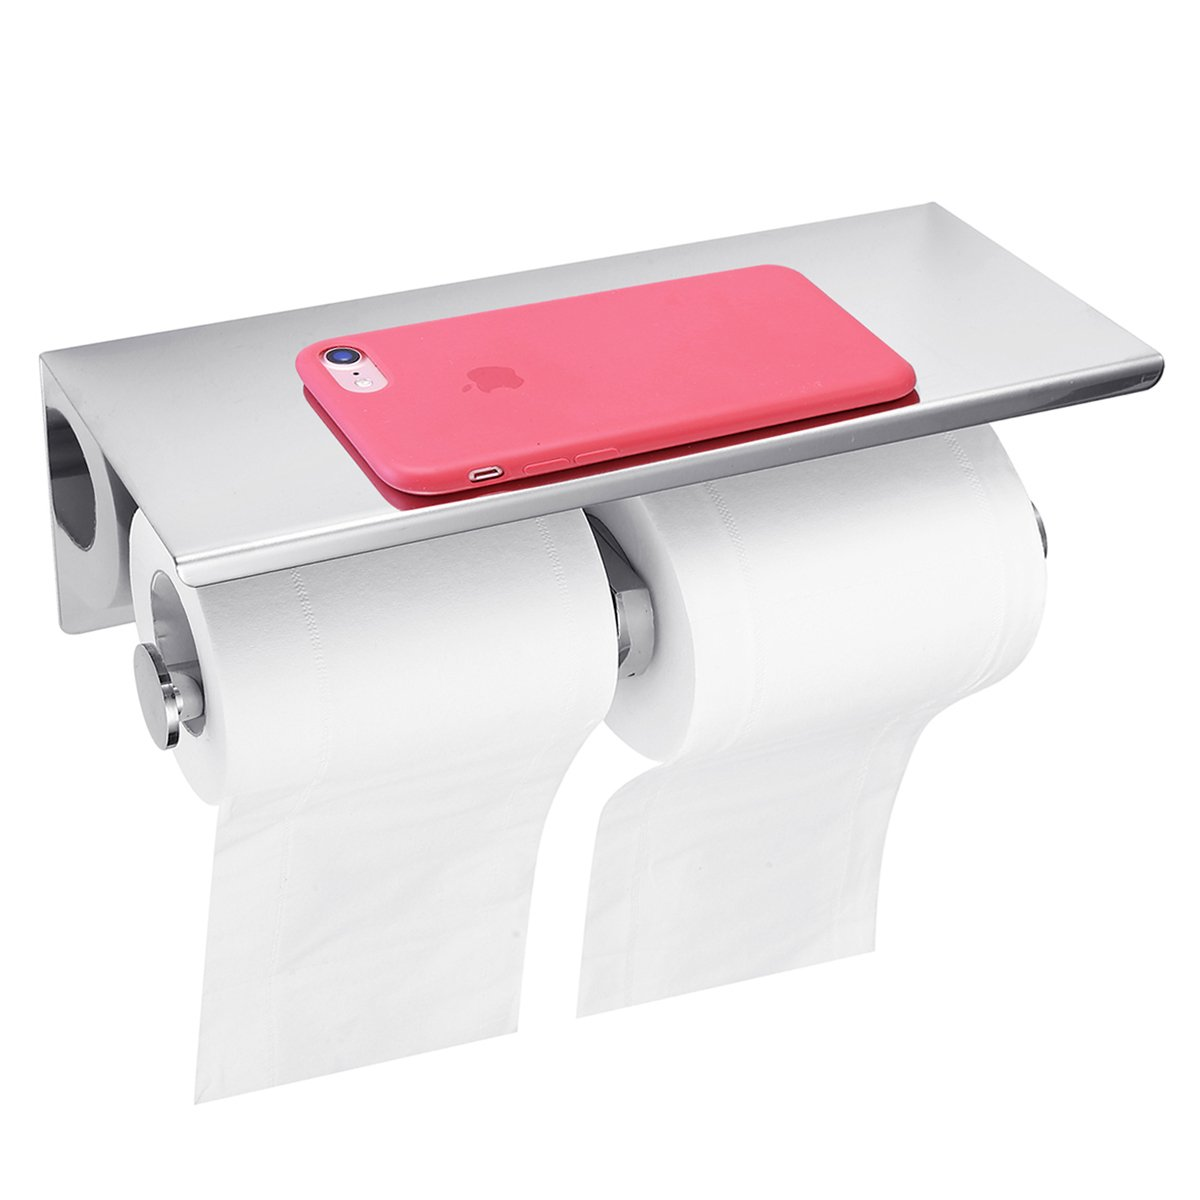 GEMITTO Bathroom Double Tissue Roll Holder SUS304 Stainless Steel Toilet Paper Holder with Mobile Phone Storage Shelf Wall Mounted